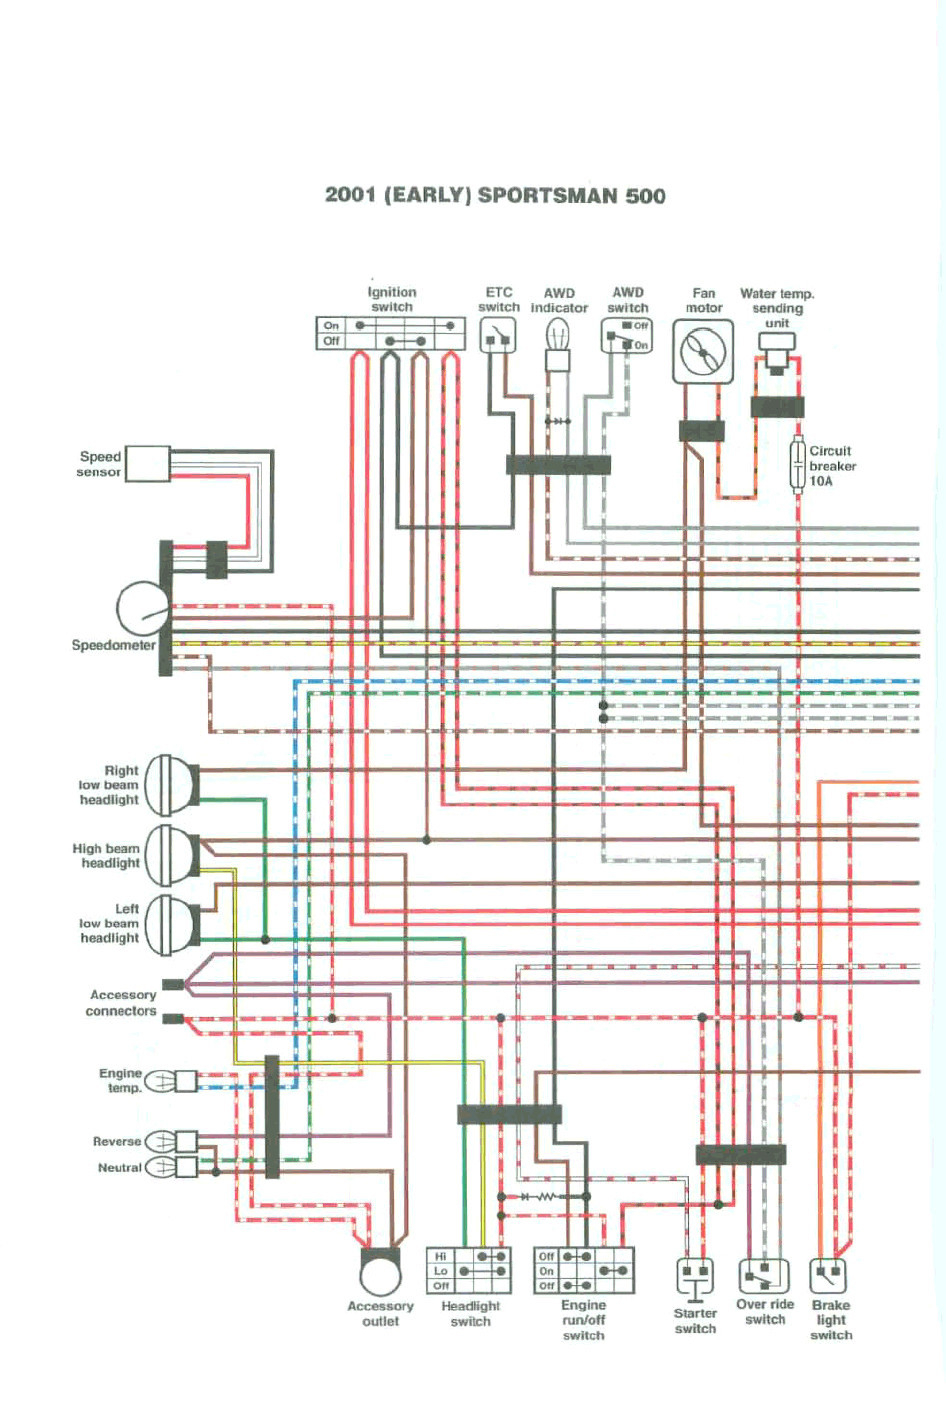 DIAGRAM] 2008 Polaris 500 Wiring Diagram FULL Version HD Quality Wiring  Diagram - TERNARYDIAGRAMS.COMELUXITALIA.IT  Wiring Diagram Database